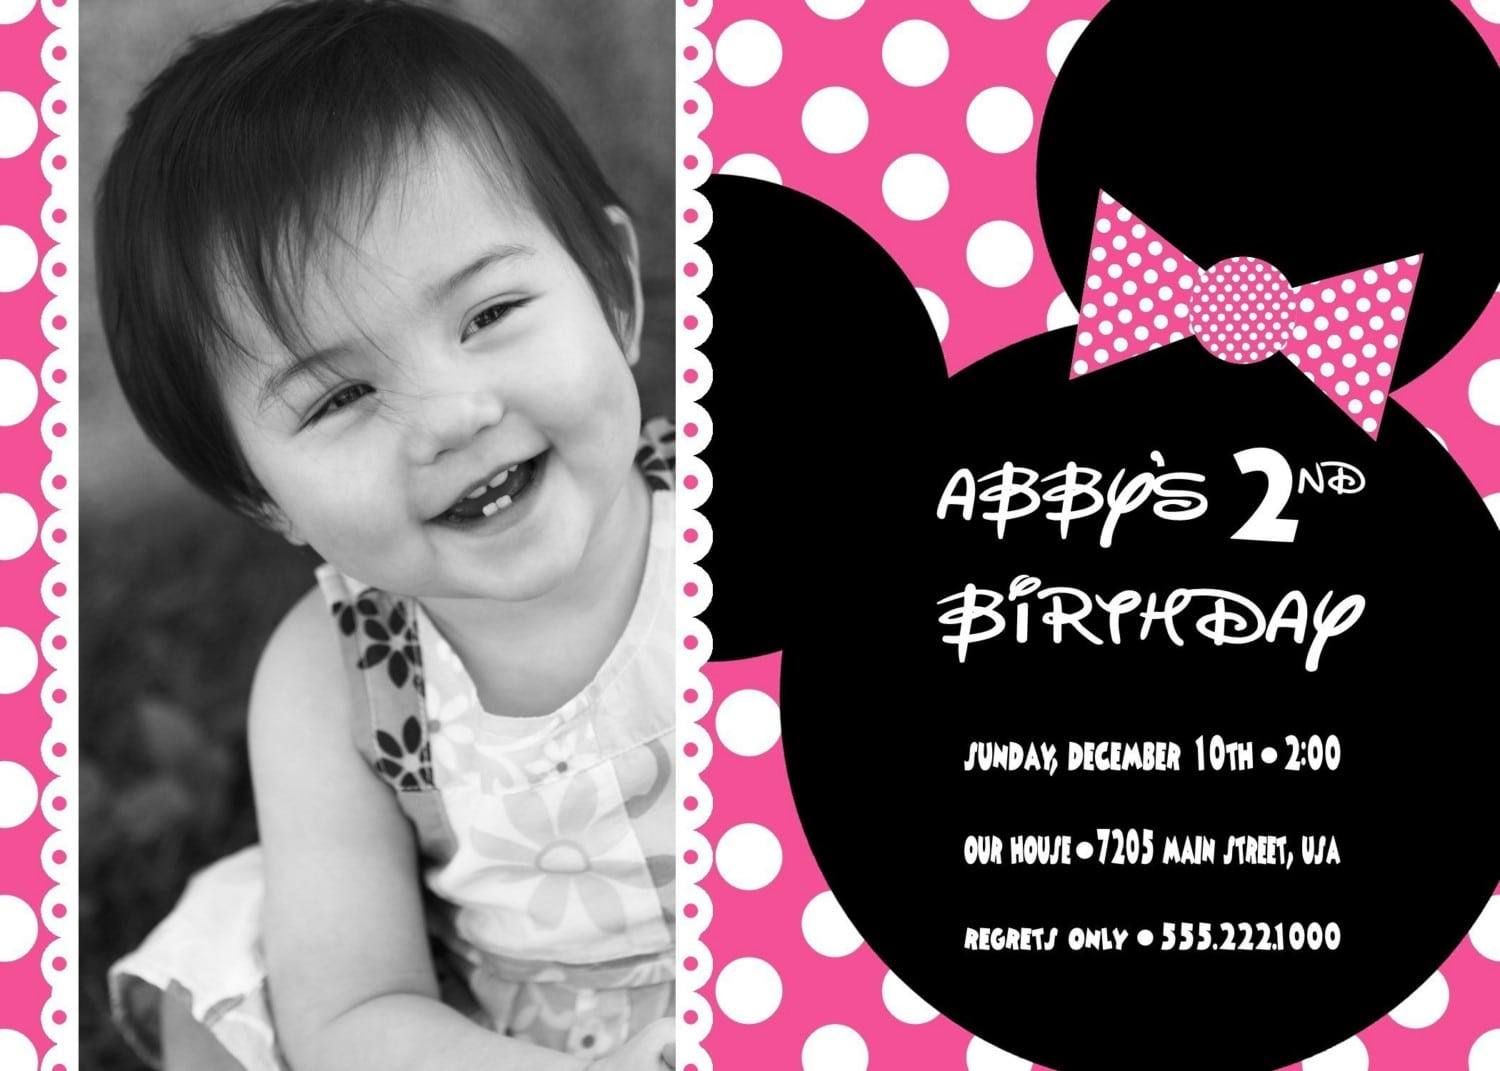 minnie mouse invitation template download download free printable minnie mouse birthday invitations